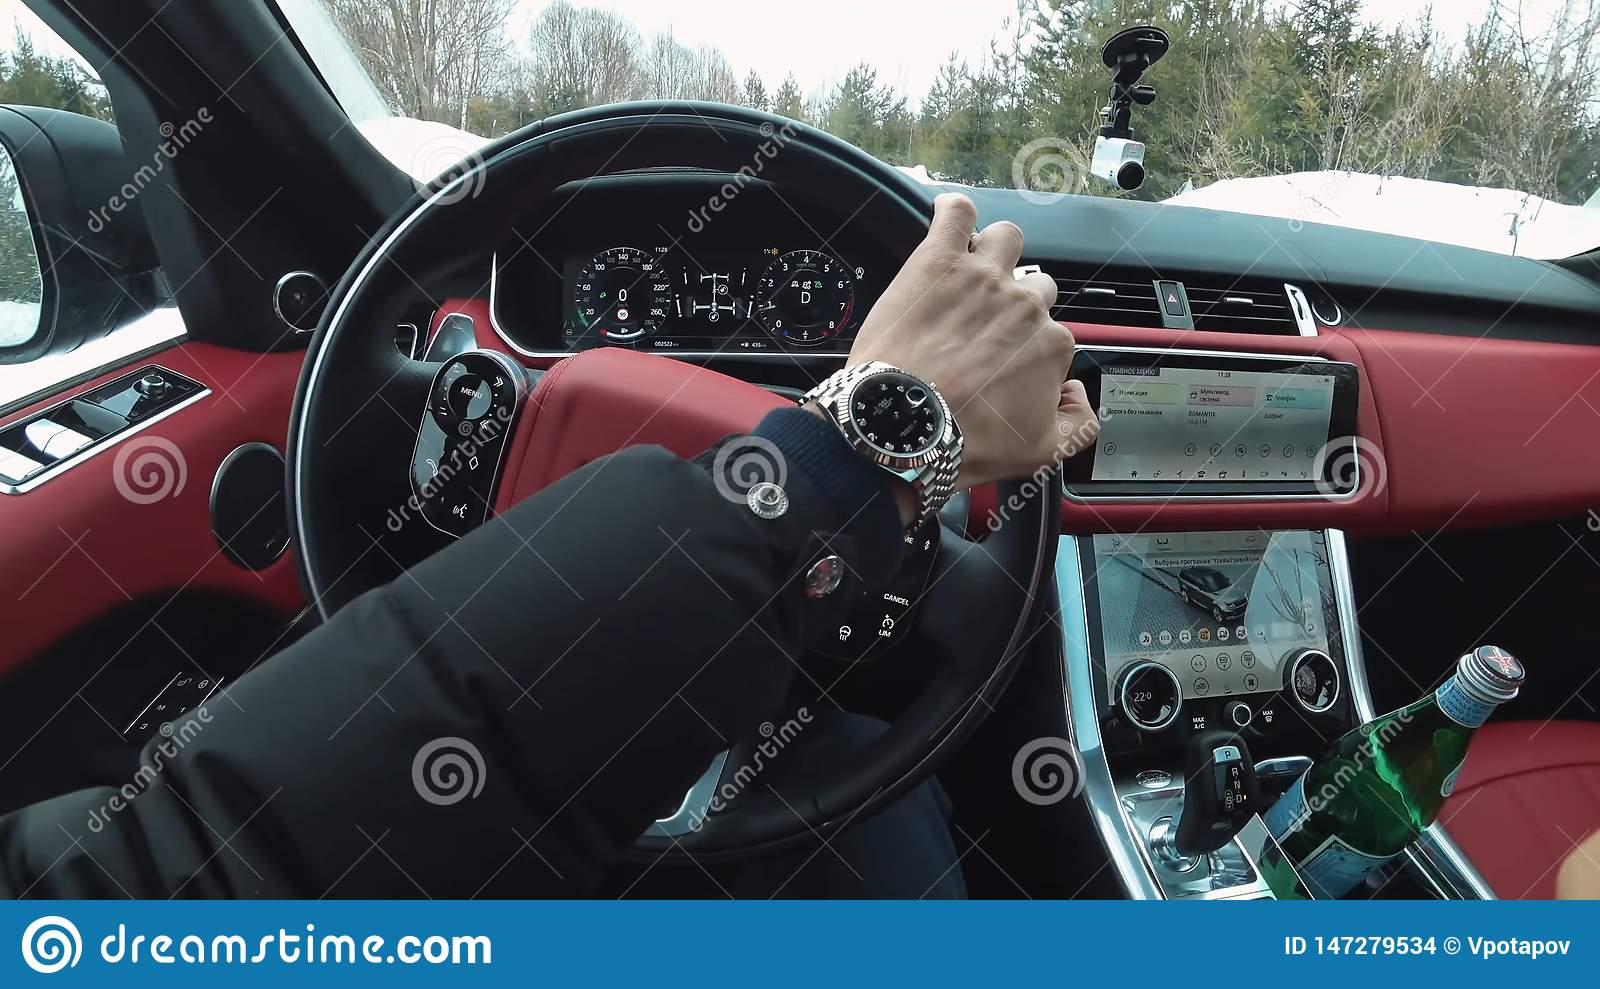 Behind the wheel of your favorite range rover, view from the salon